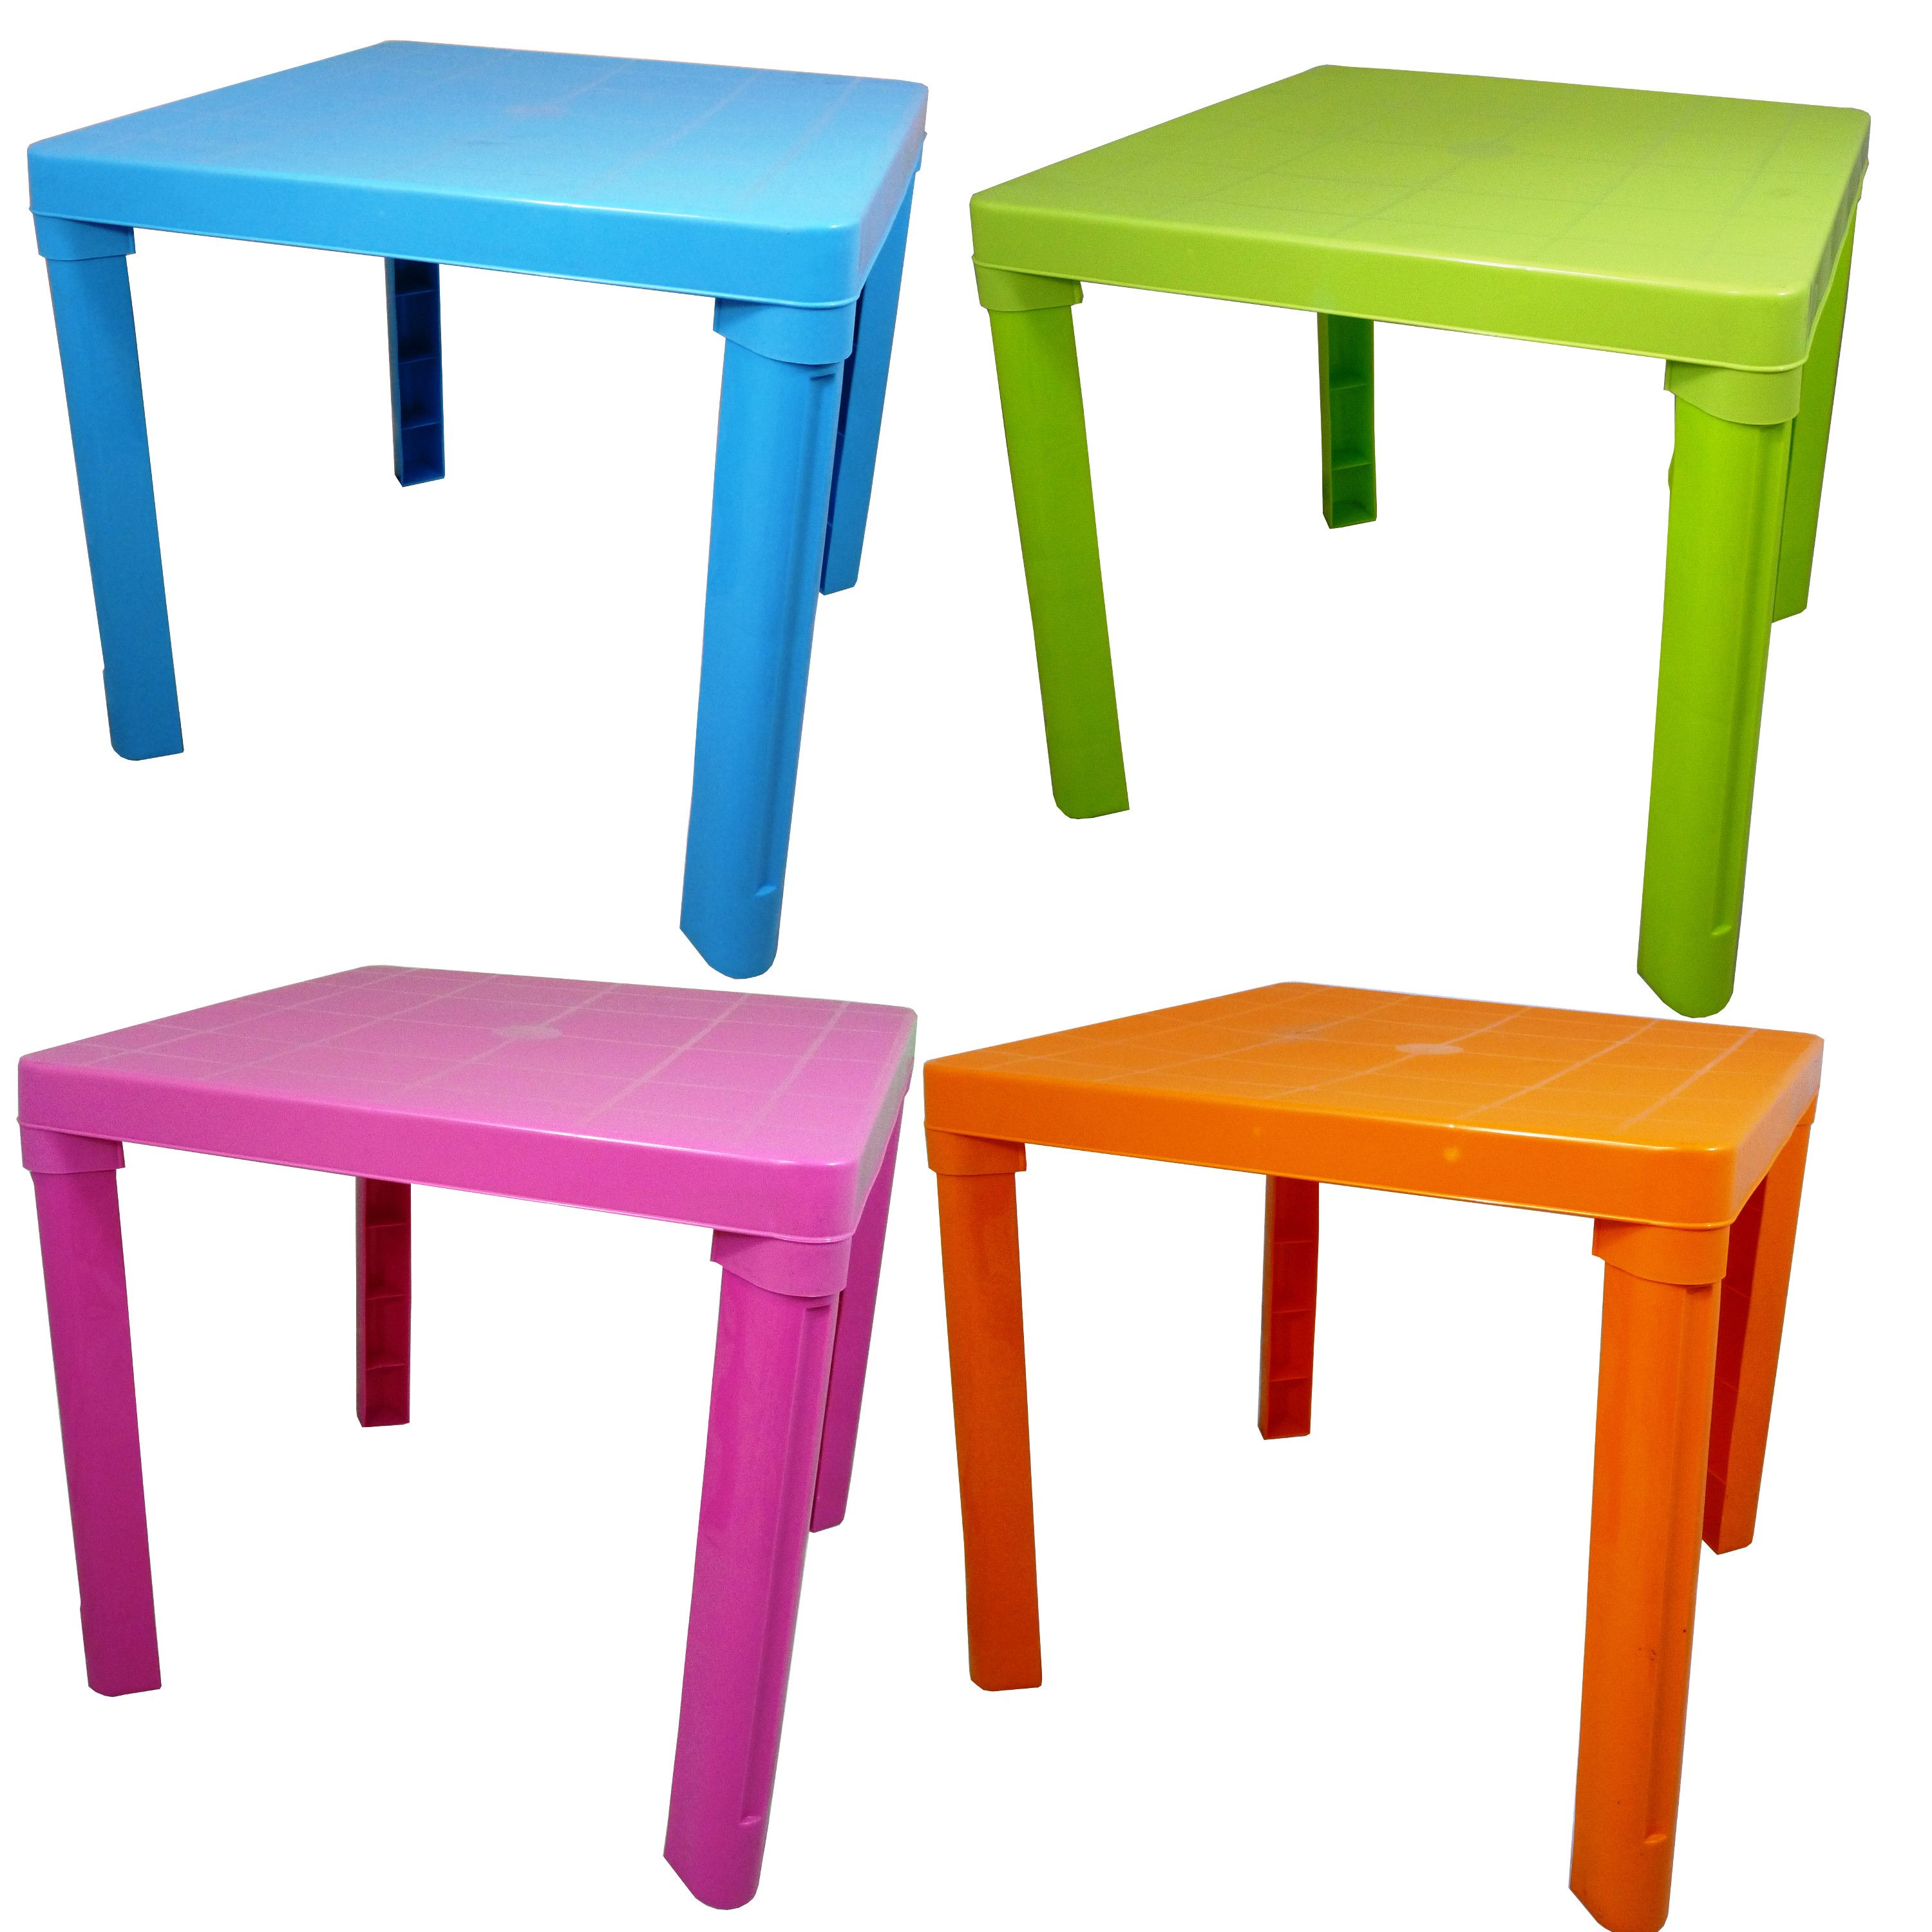 Kids Children Plastic Table 4 Colours Home Garden Picnic